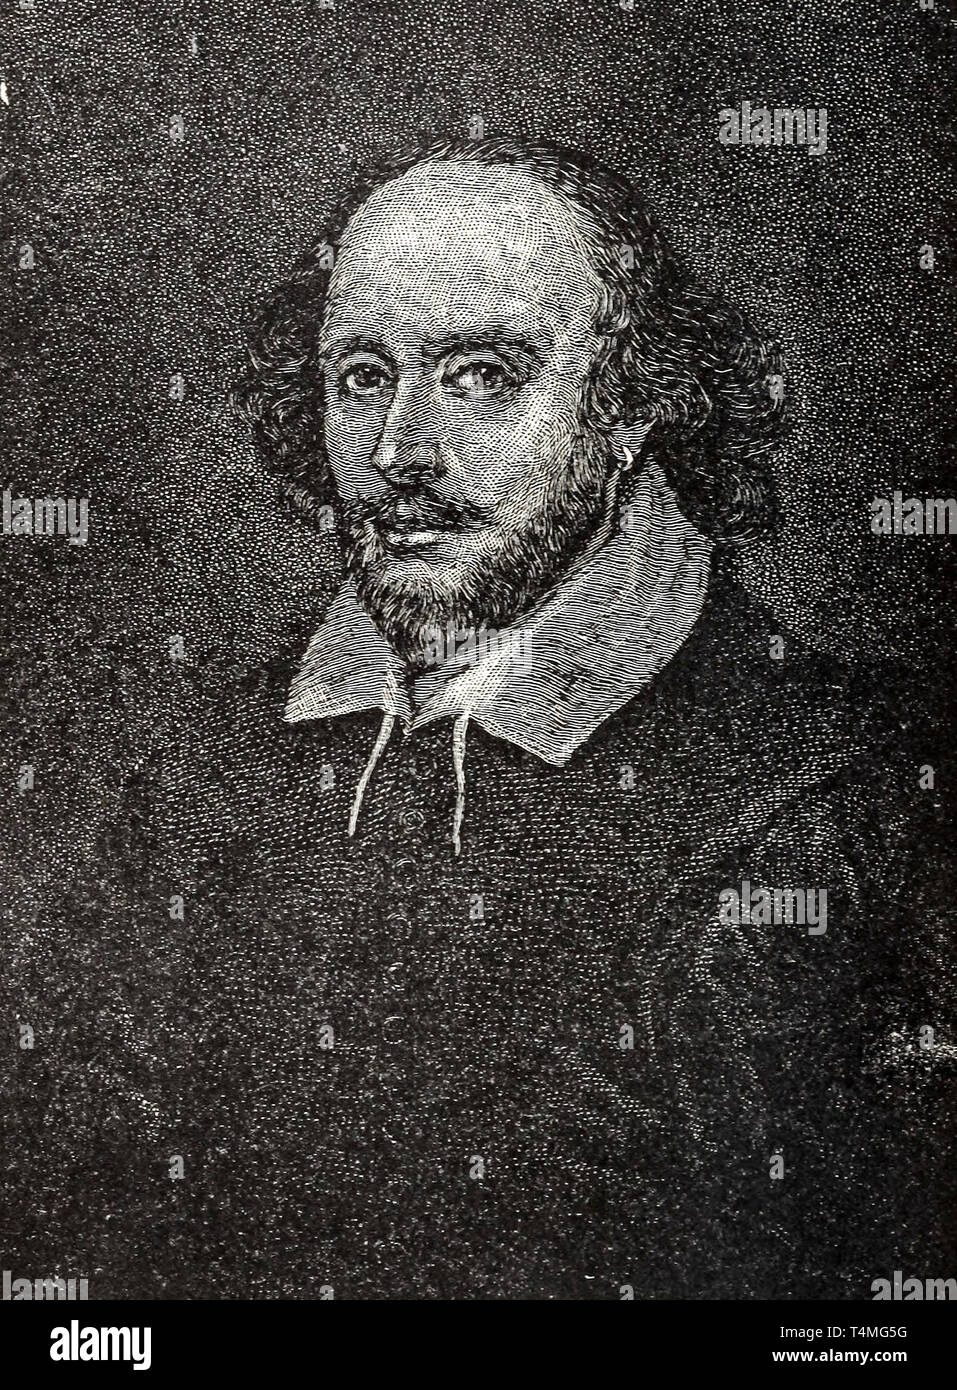 William Shakespeare (1564-1616), portrait, etching, artist unknown Stock Photo